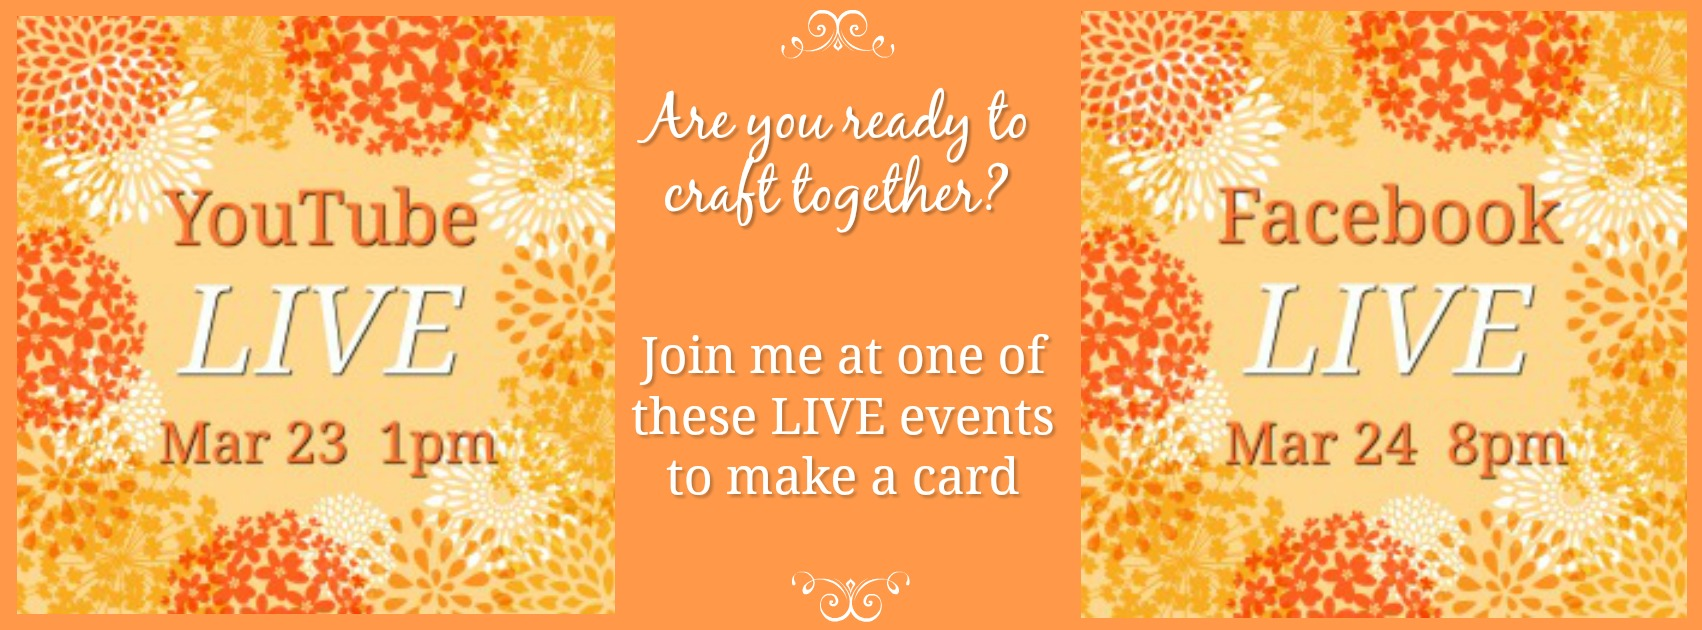 check out a LIVE event with Jenny Hall www.jennyhalldesign.com